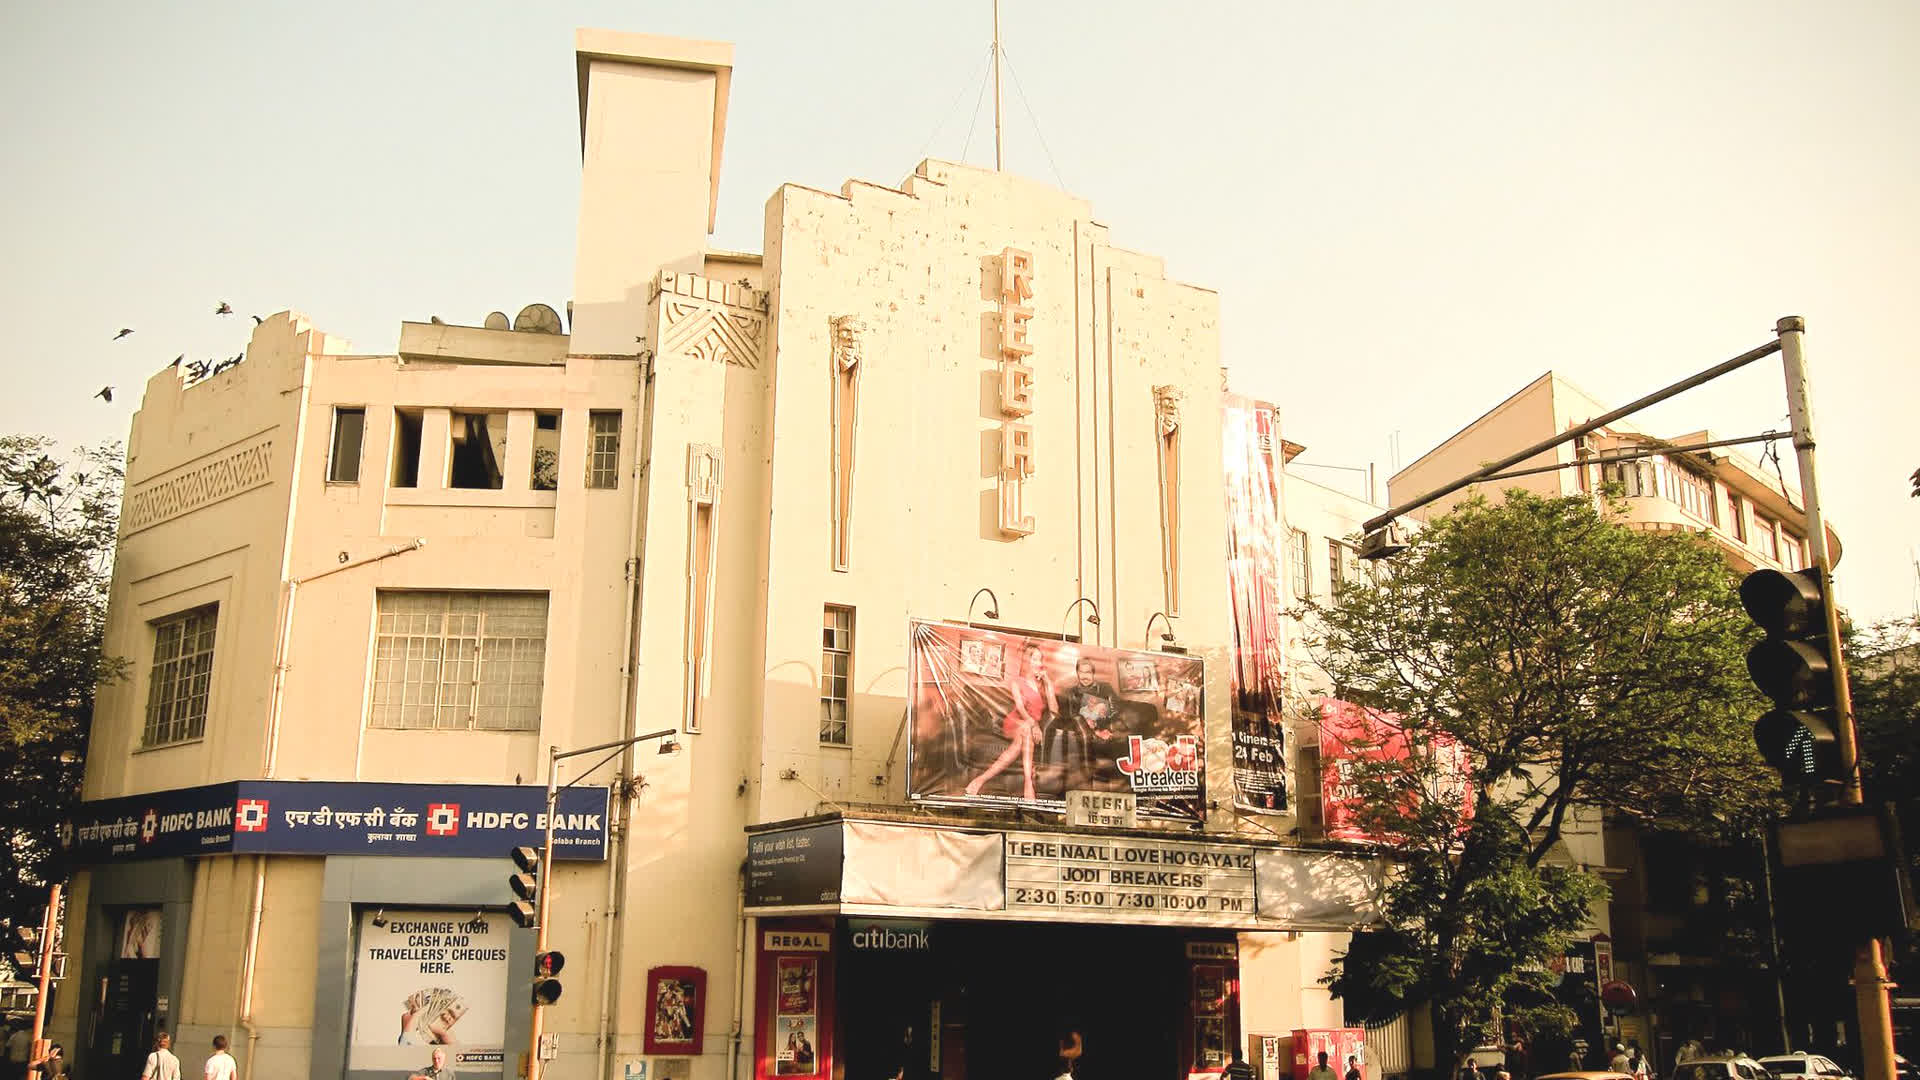 Regal Cinema: Many Firsts